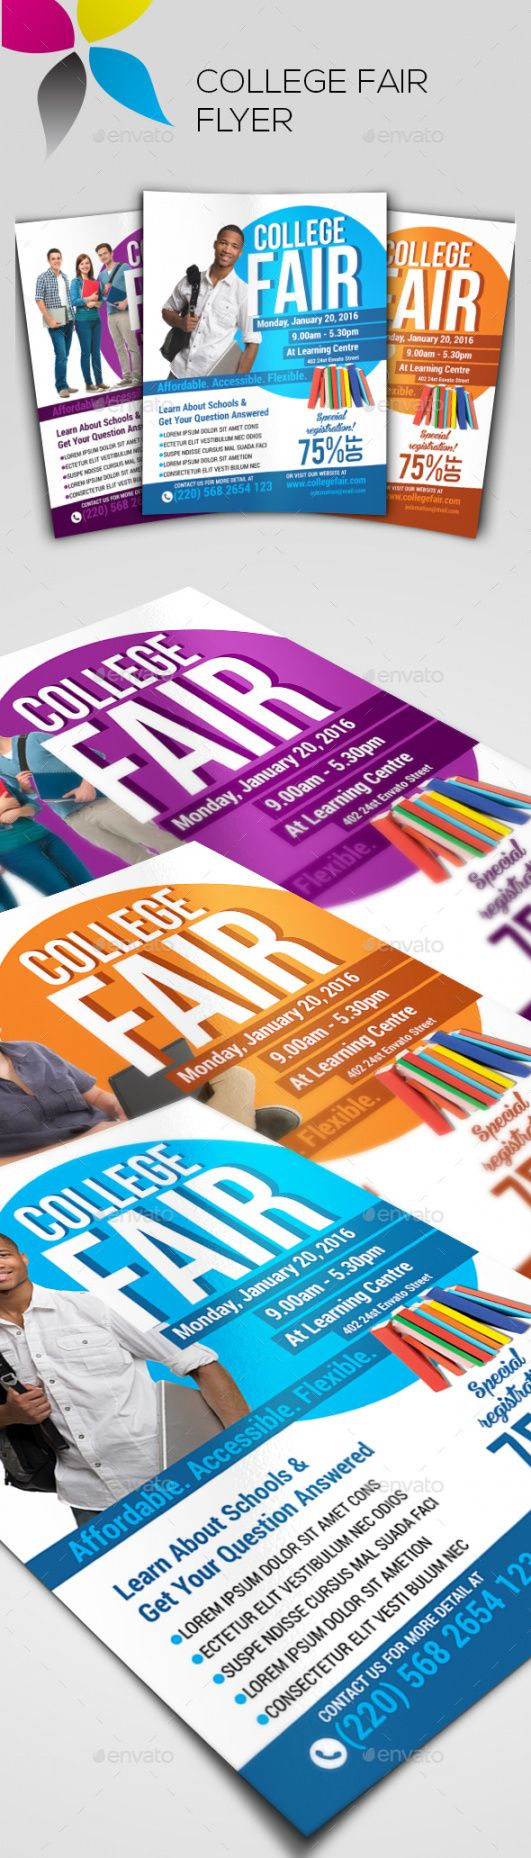 fair advert stationery and design templates from graphicriver college fair flyer template and sample